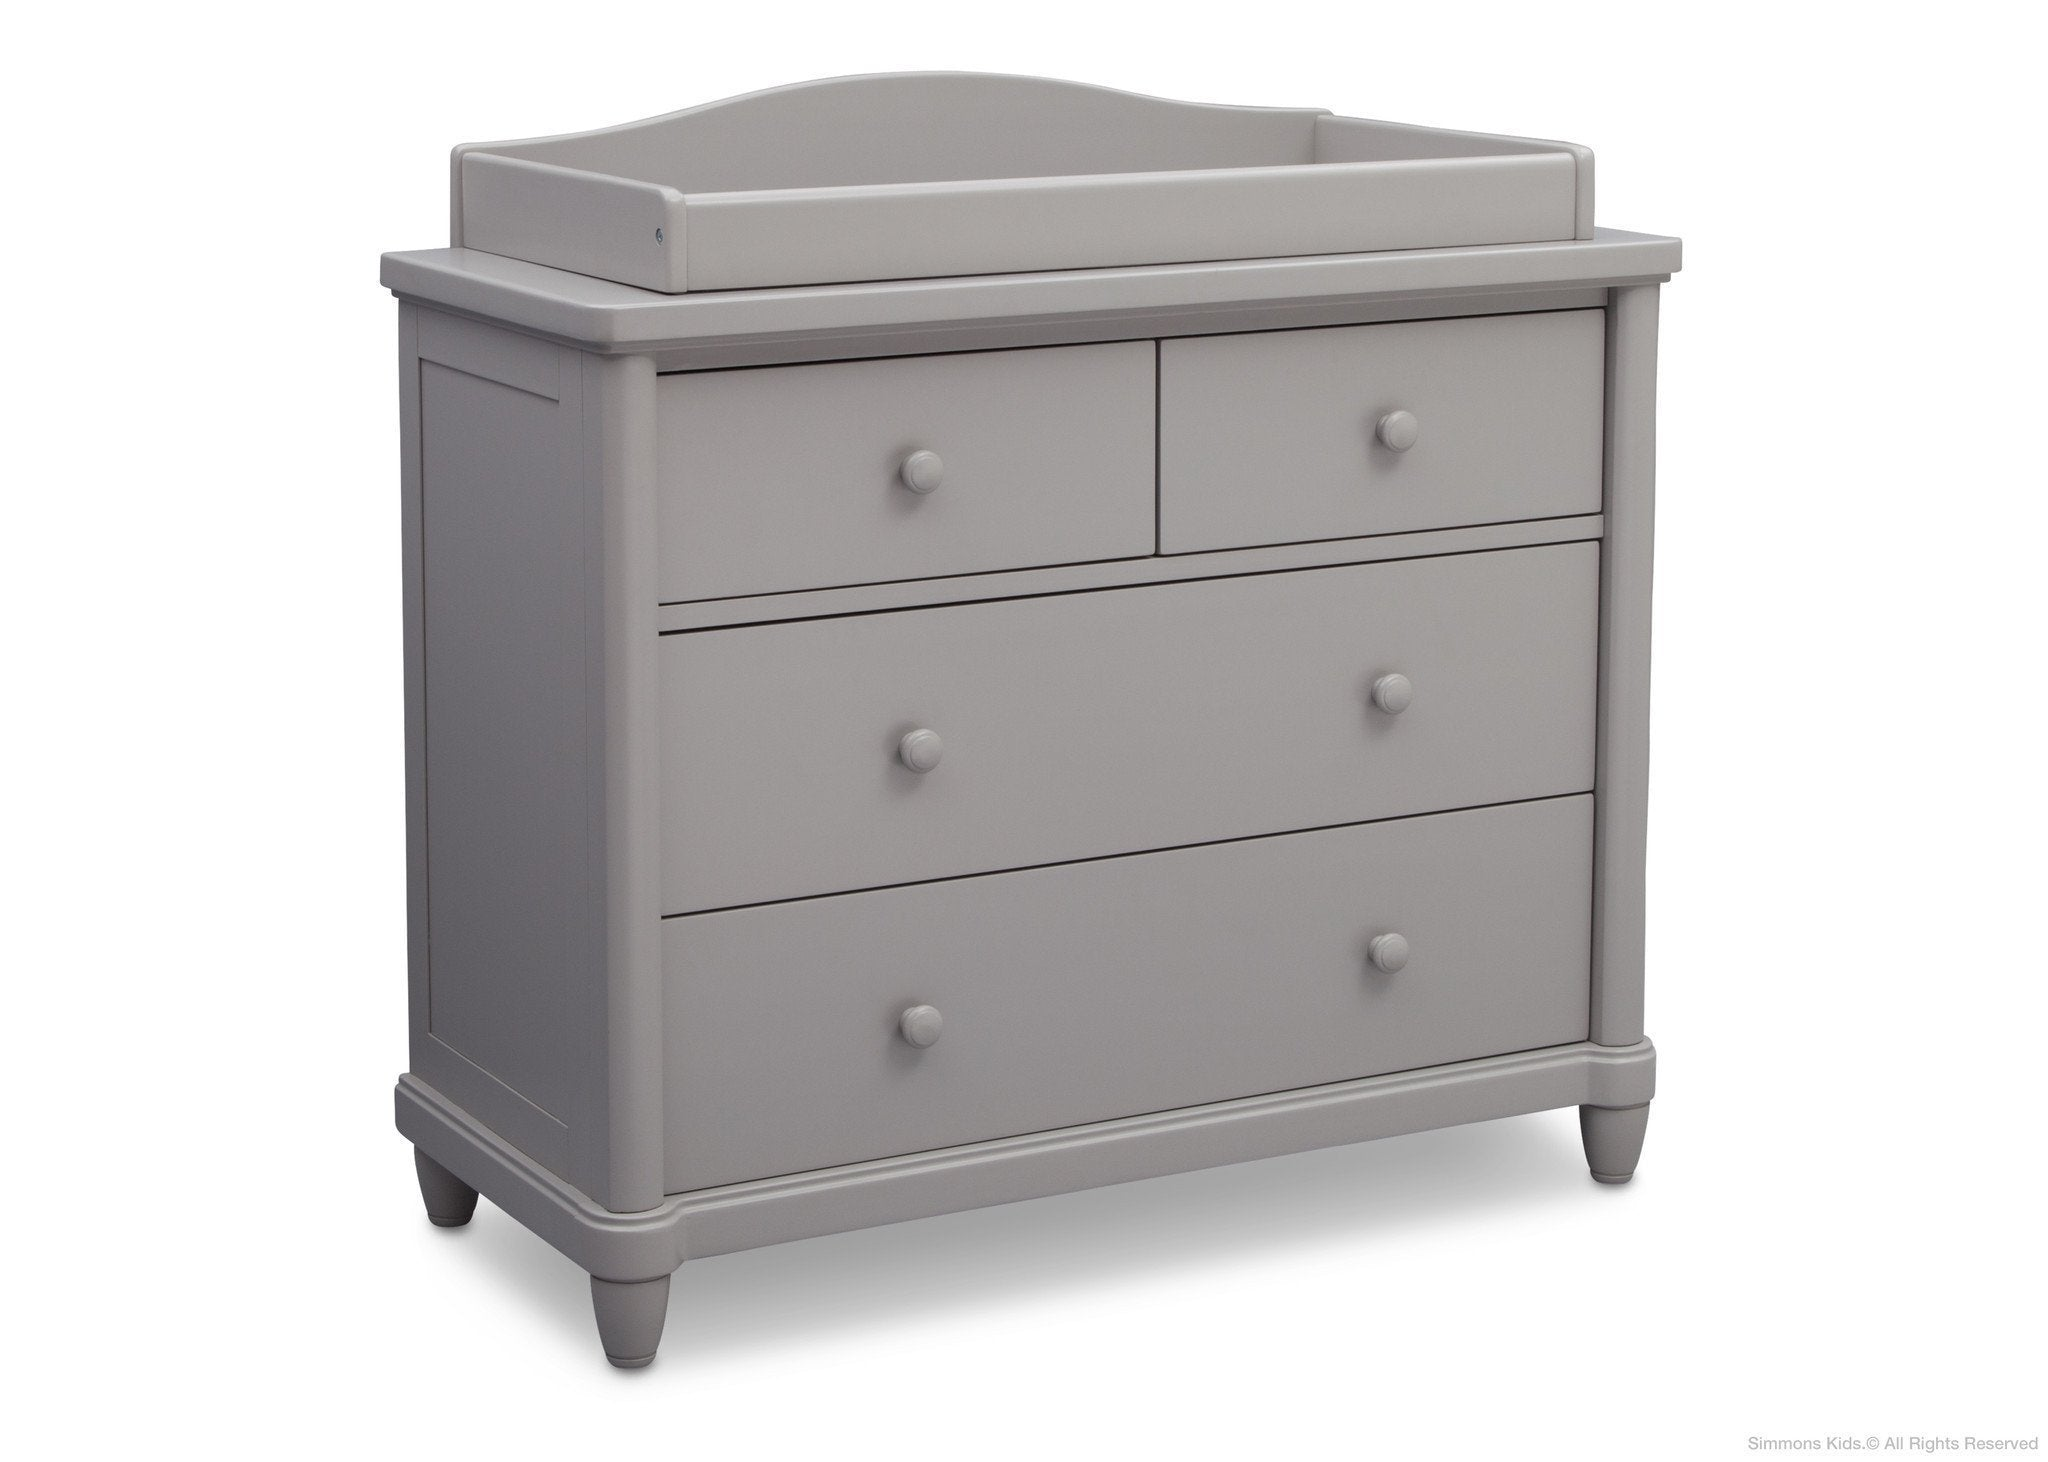 Simmons Kids Grey (026) Belmont 4 Drawer Dresser, Side View a1a